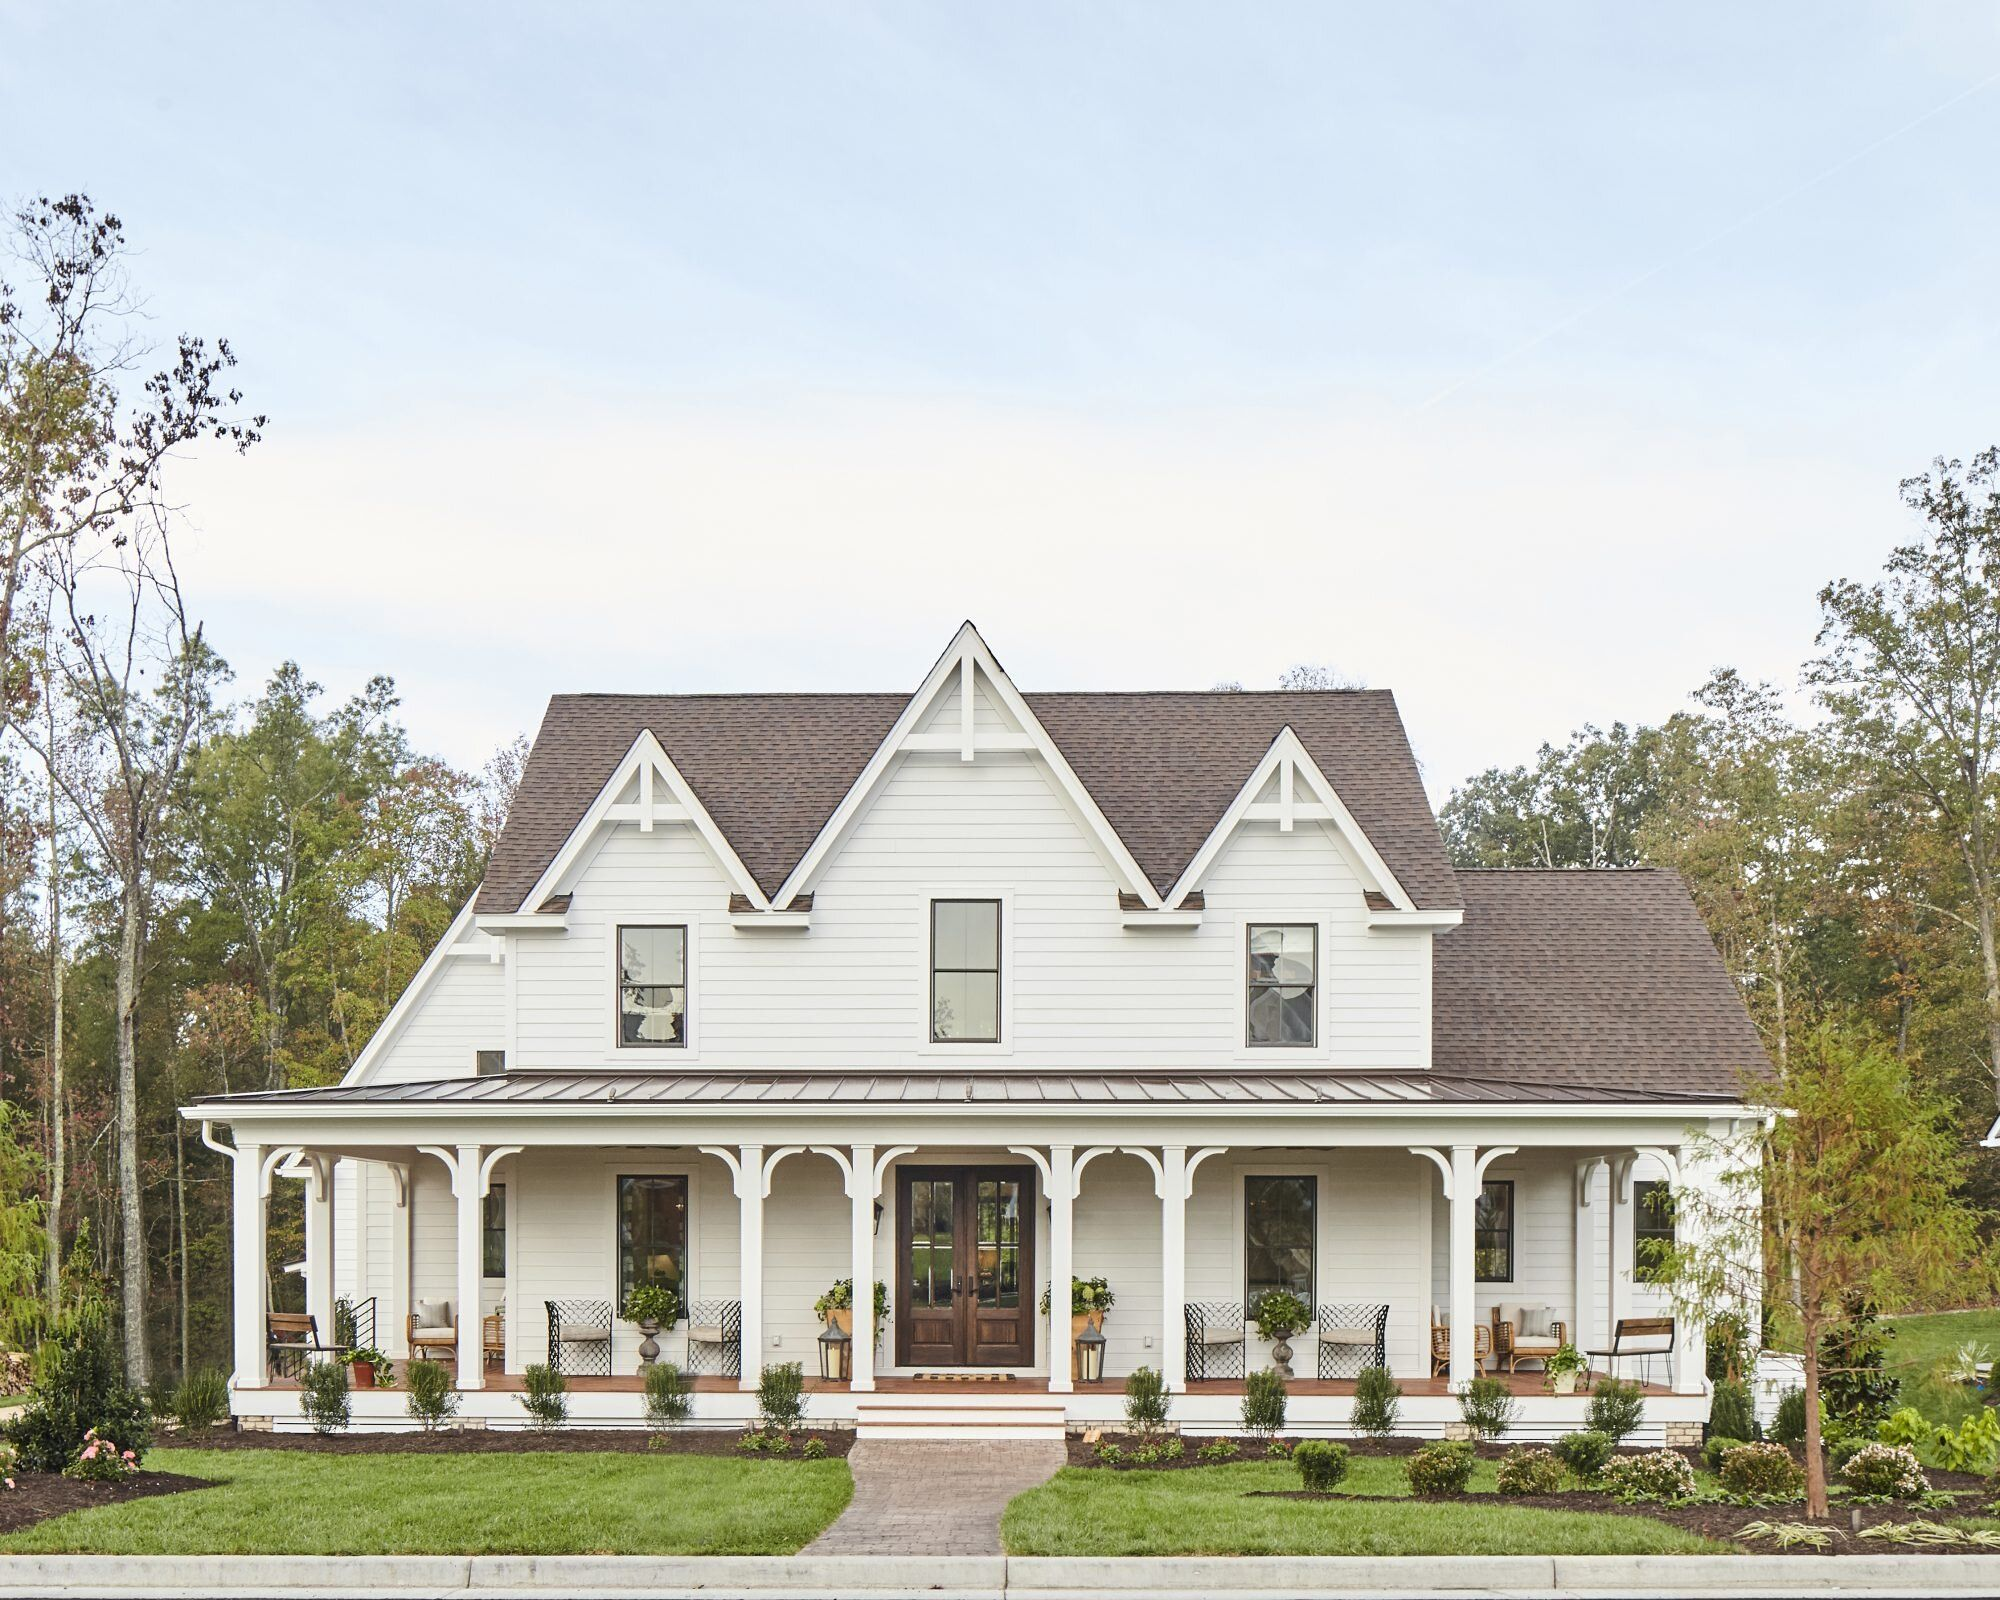 45 Farmhouse Decor Ideas For Your Southern Home In 2020 Gothic House Farmhouse Style House Plans